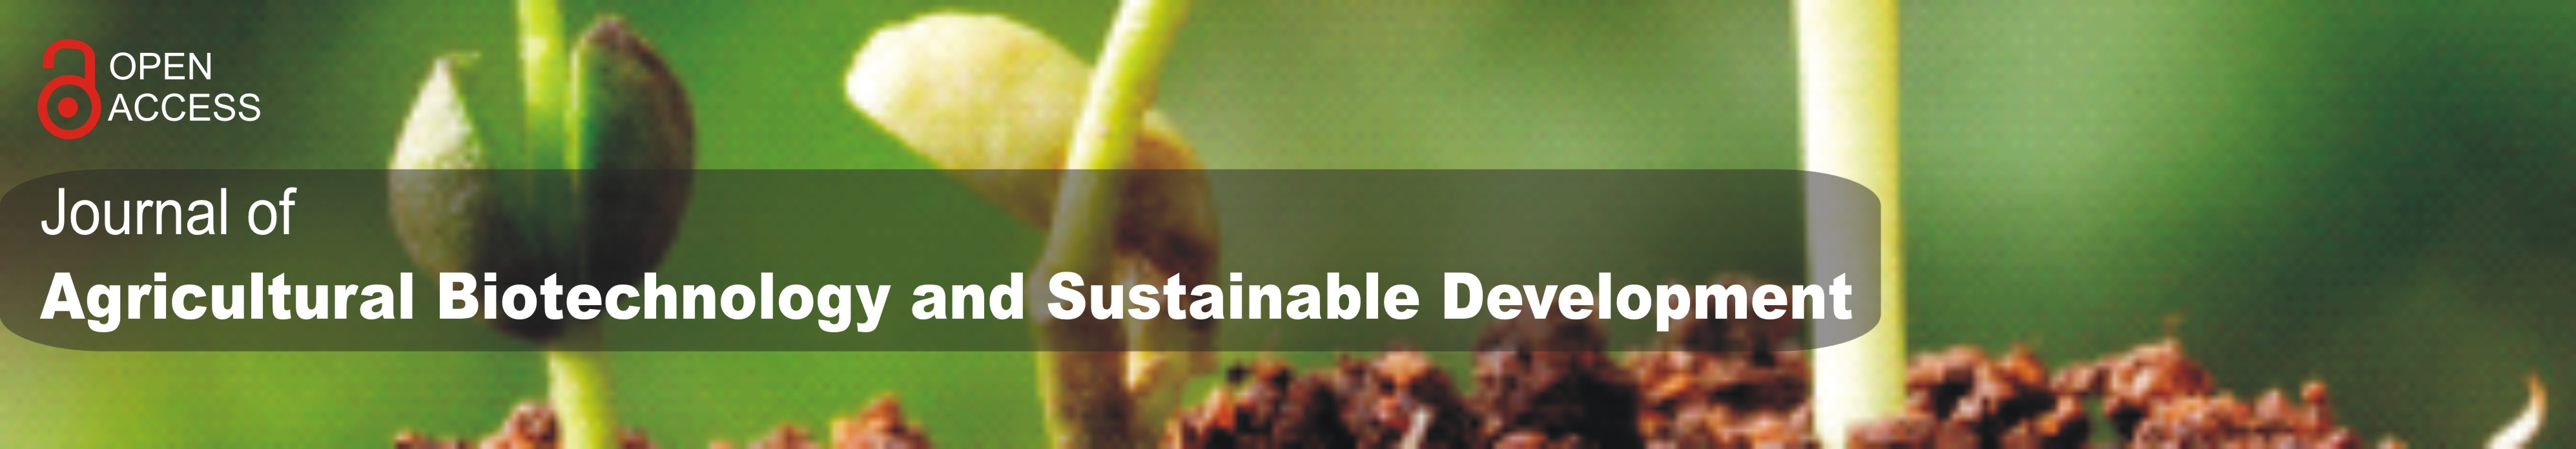 Journal of Agricultural Biotechnology and Sustainable Development